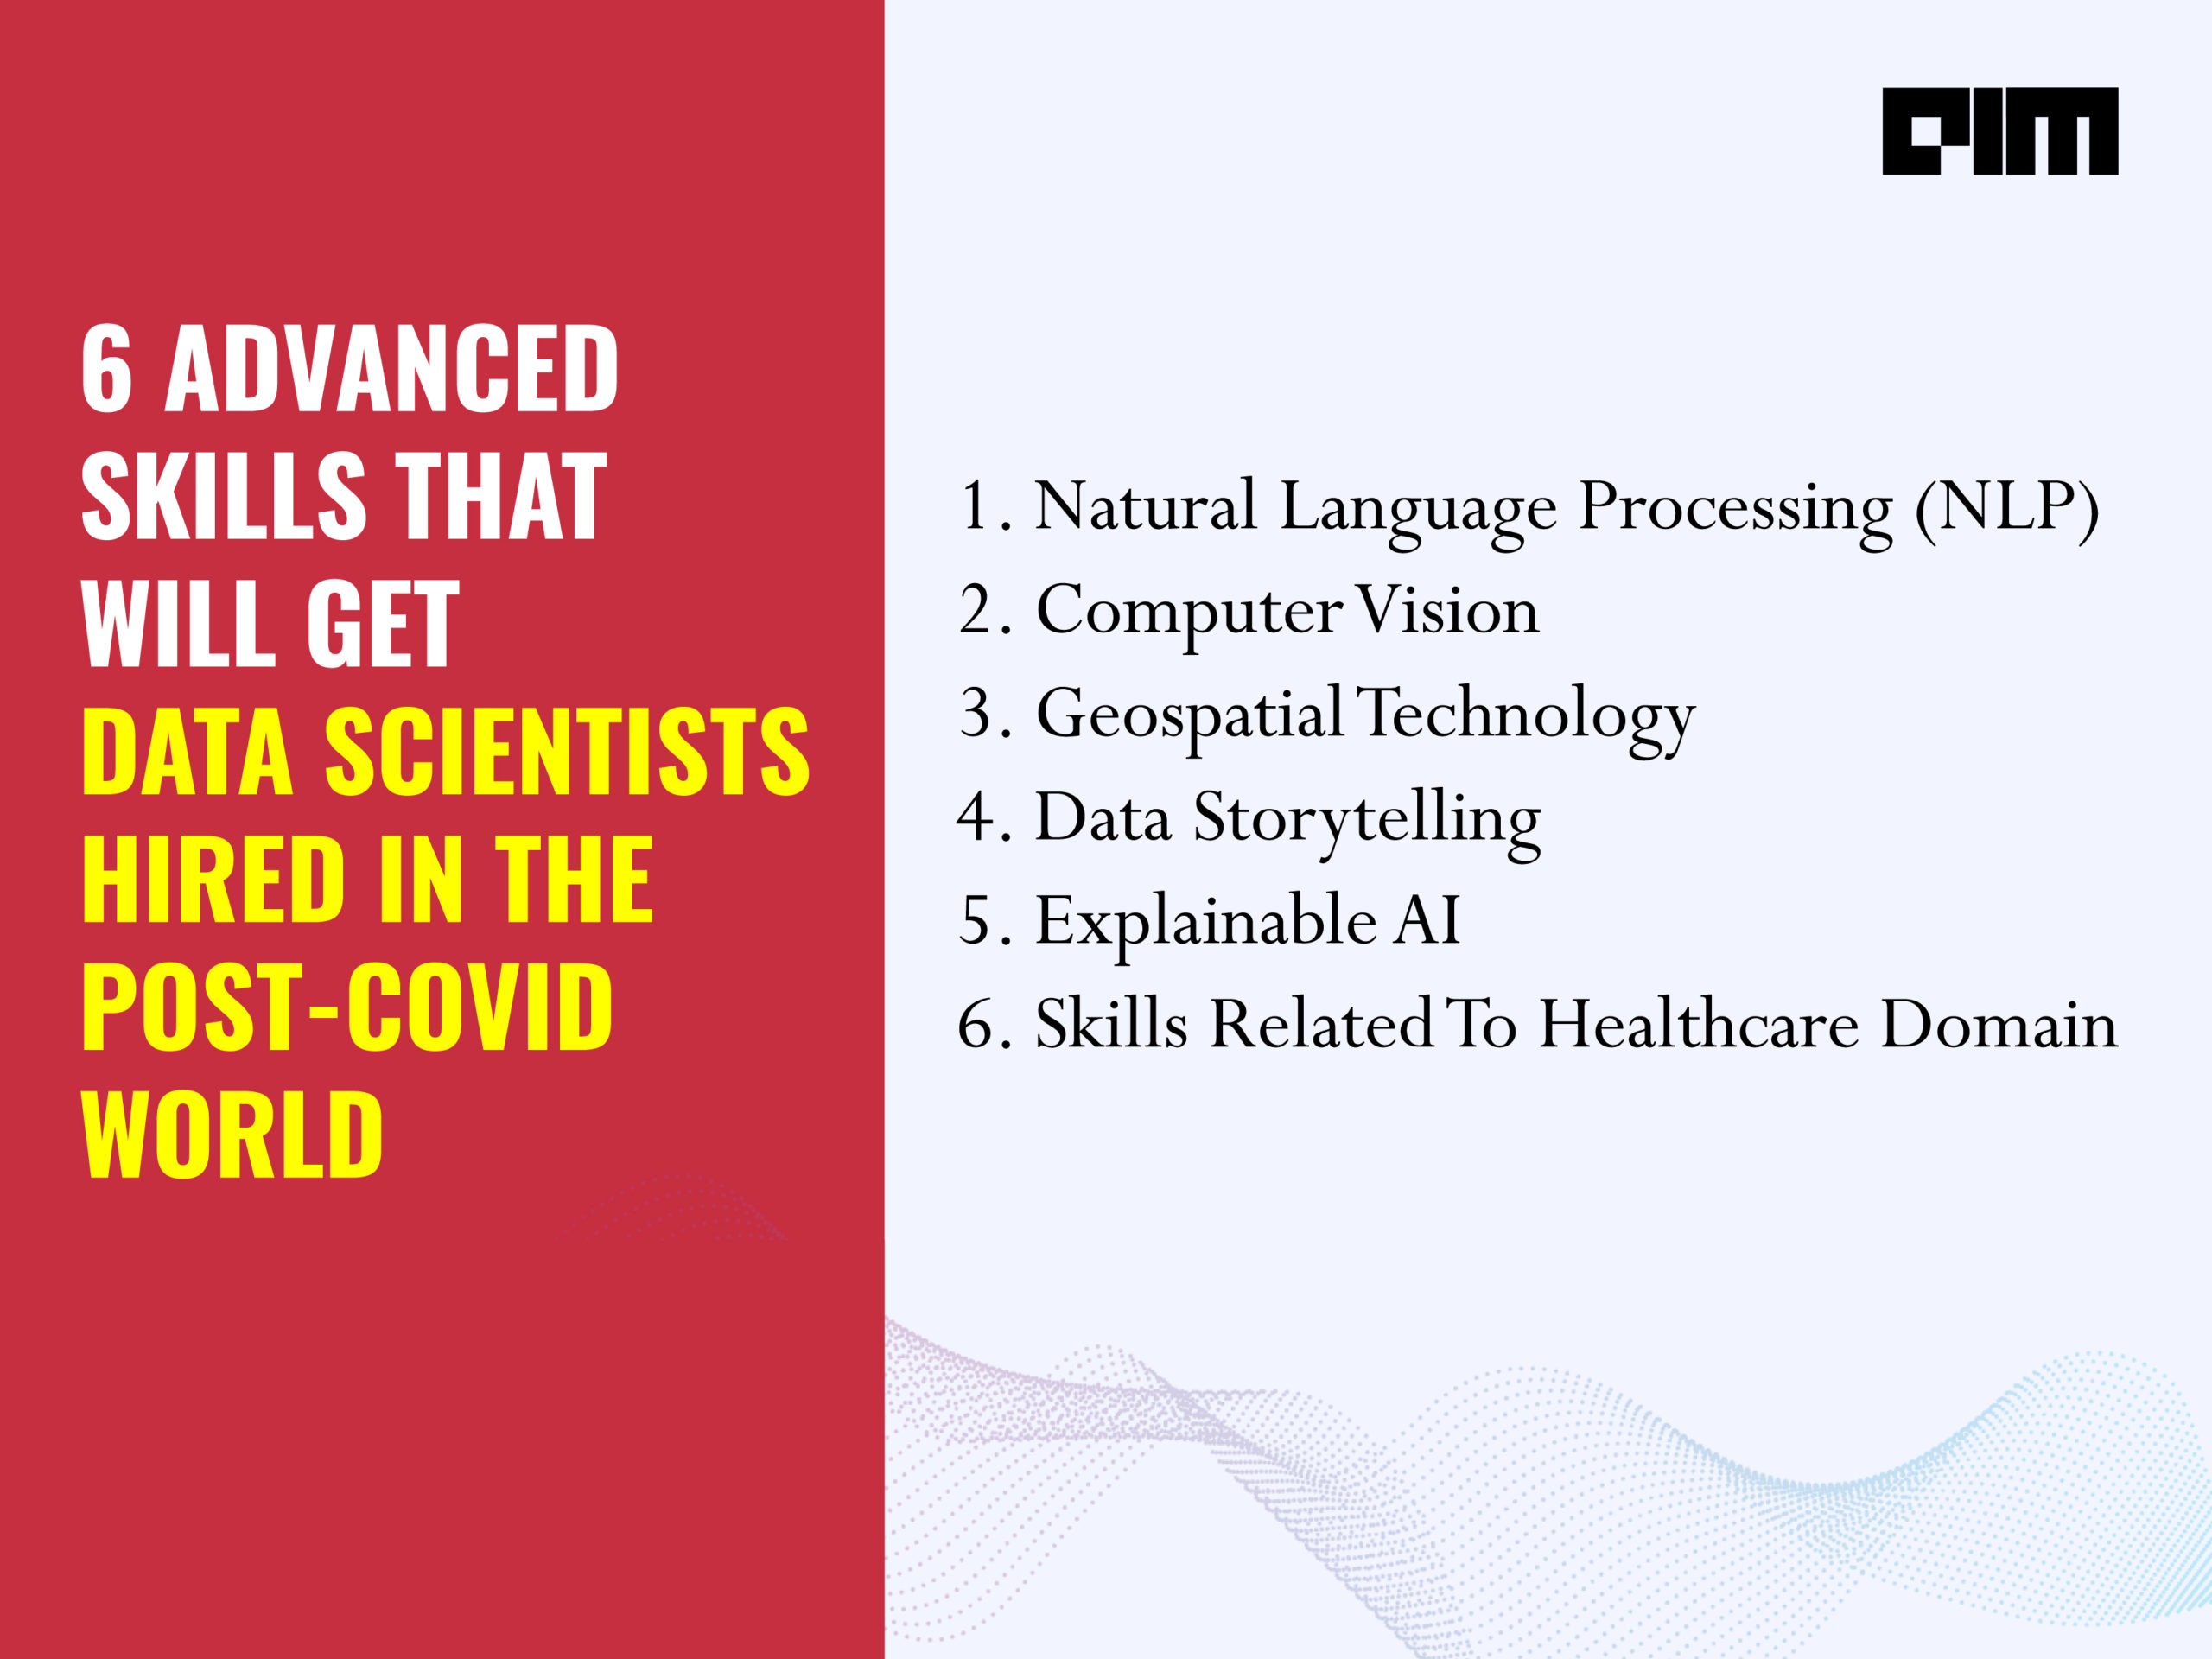 6 Advanced Skills That Will Get Data Scientists Hired In The Post-COVID World